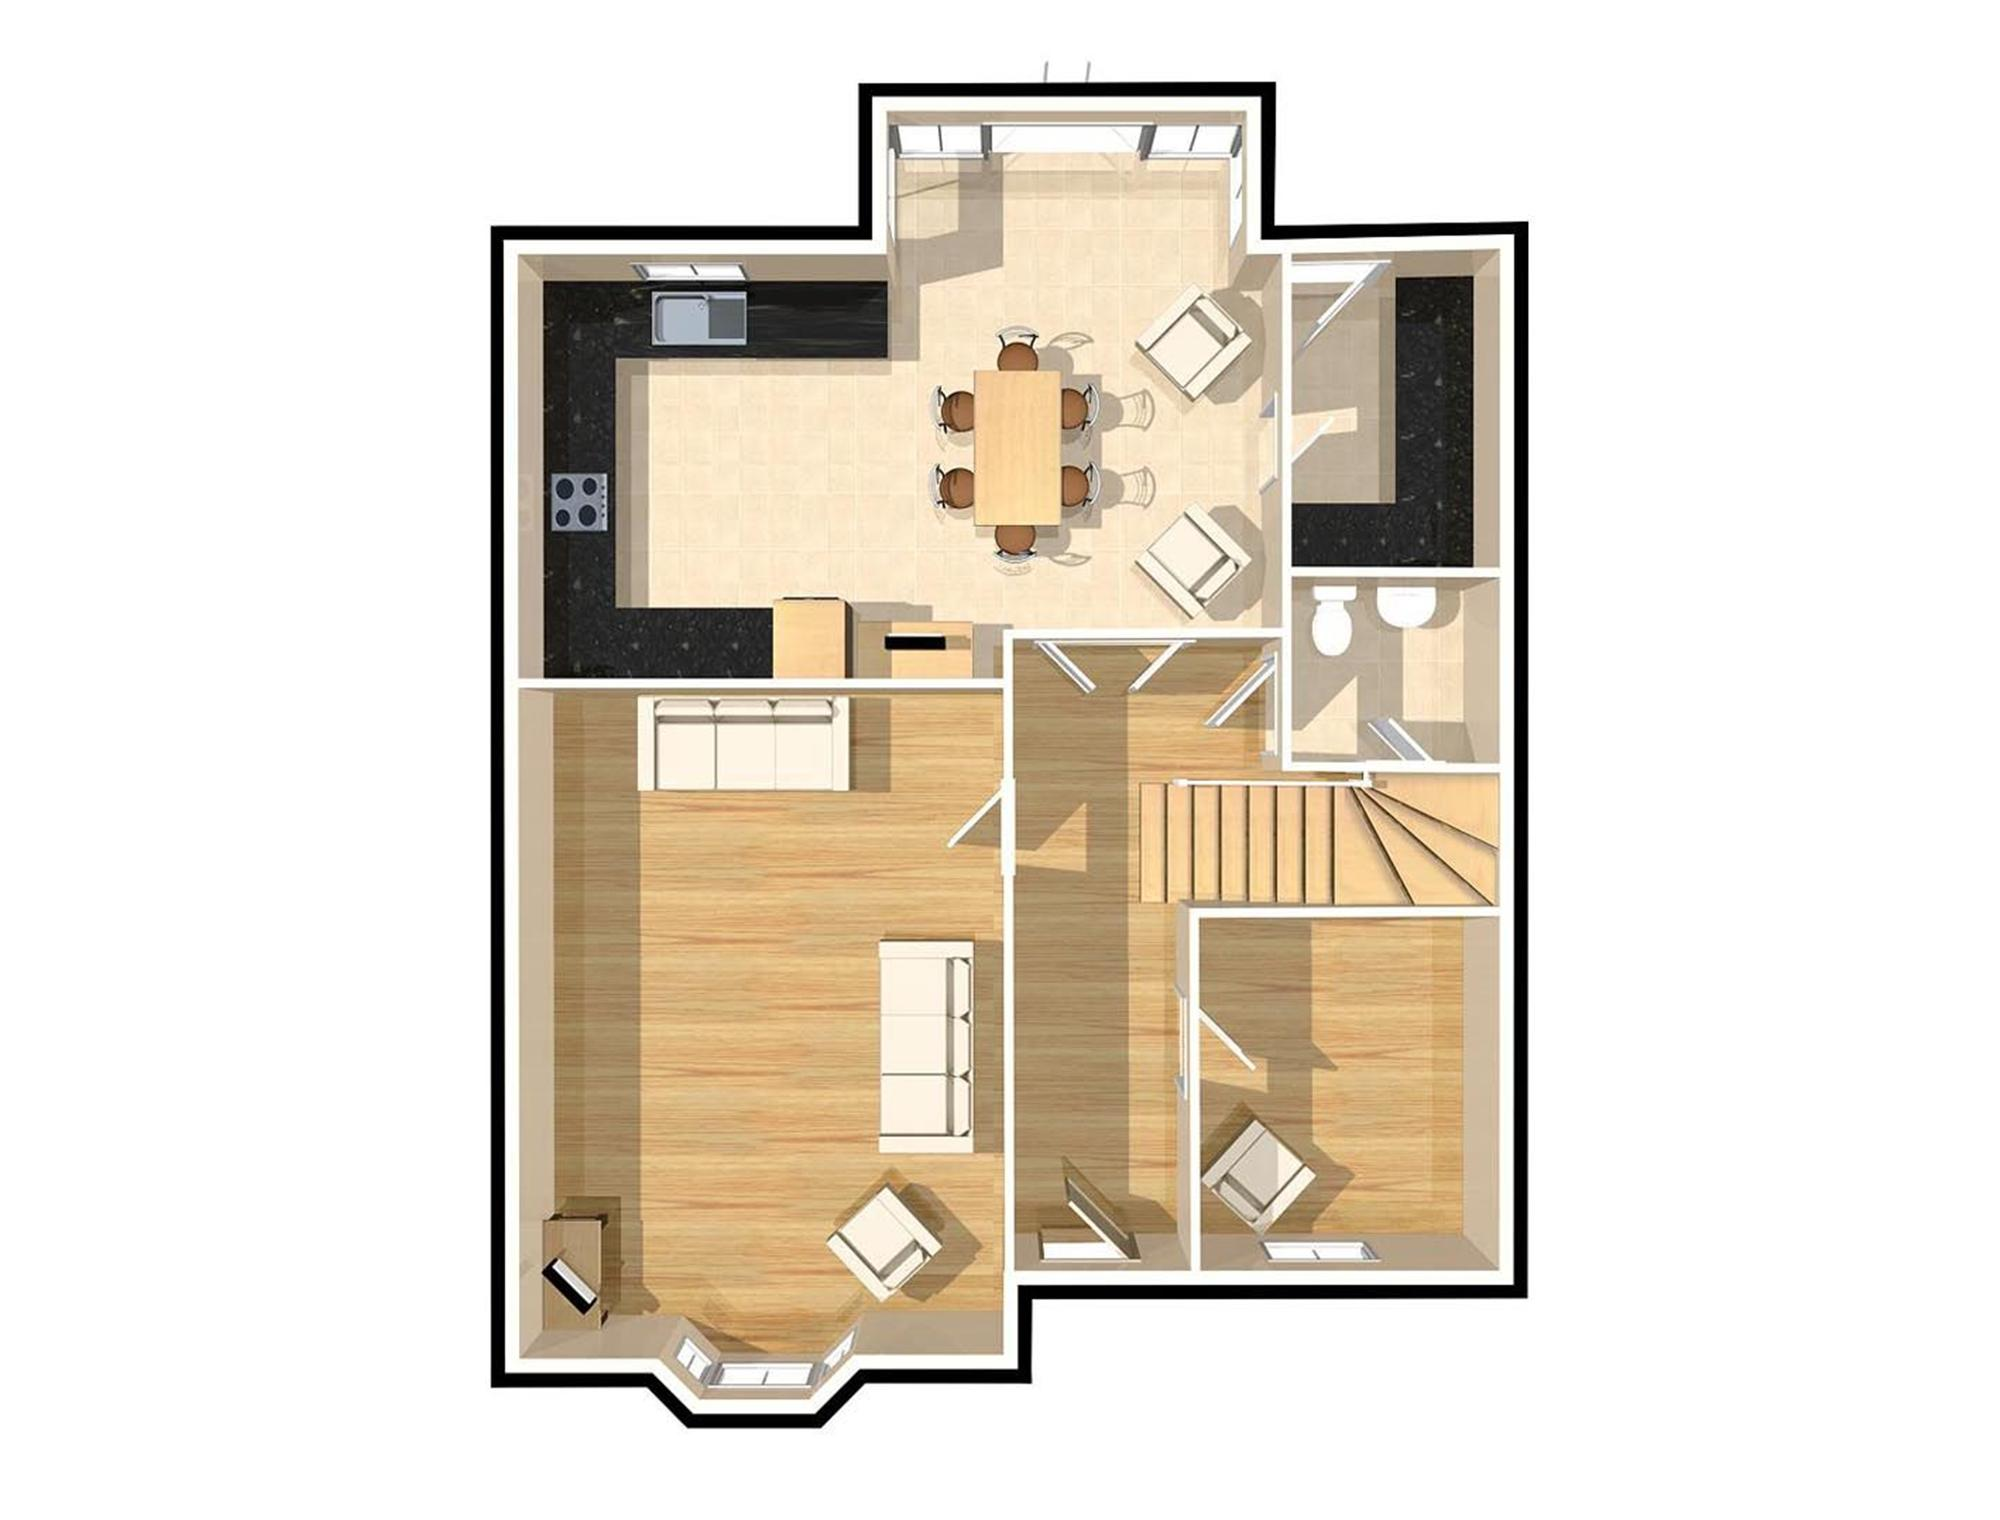 wilson homes floor plans homes home plans ideas picture wilson homes floor plans home design and style